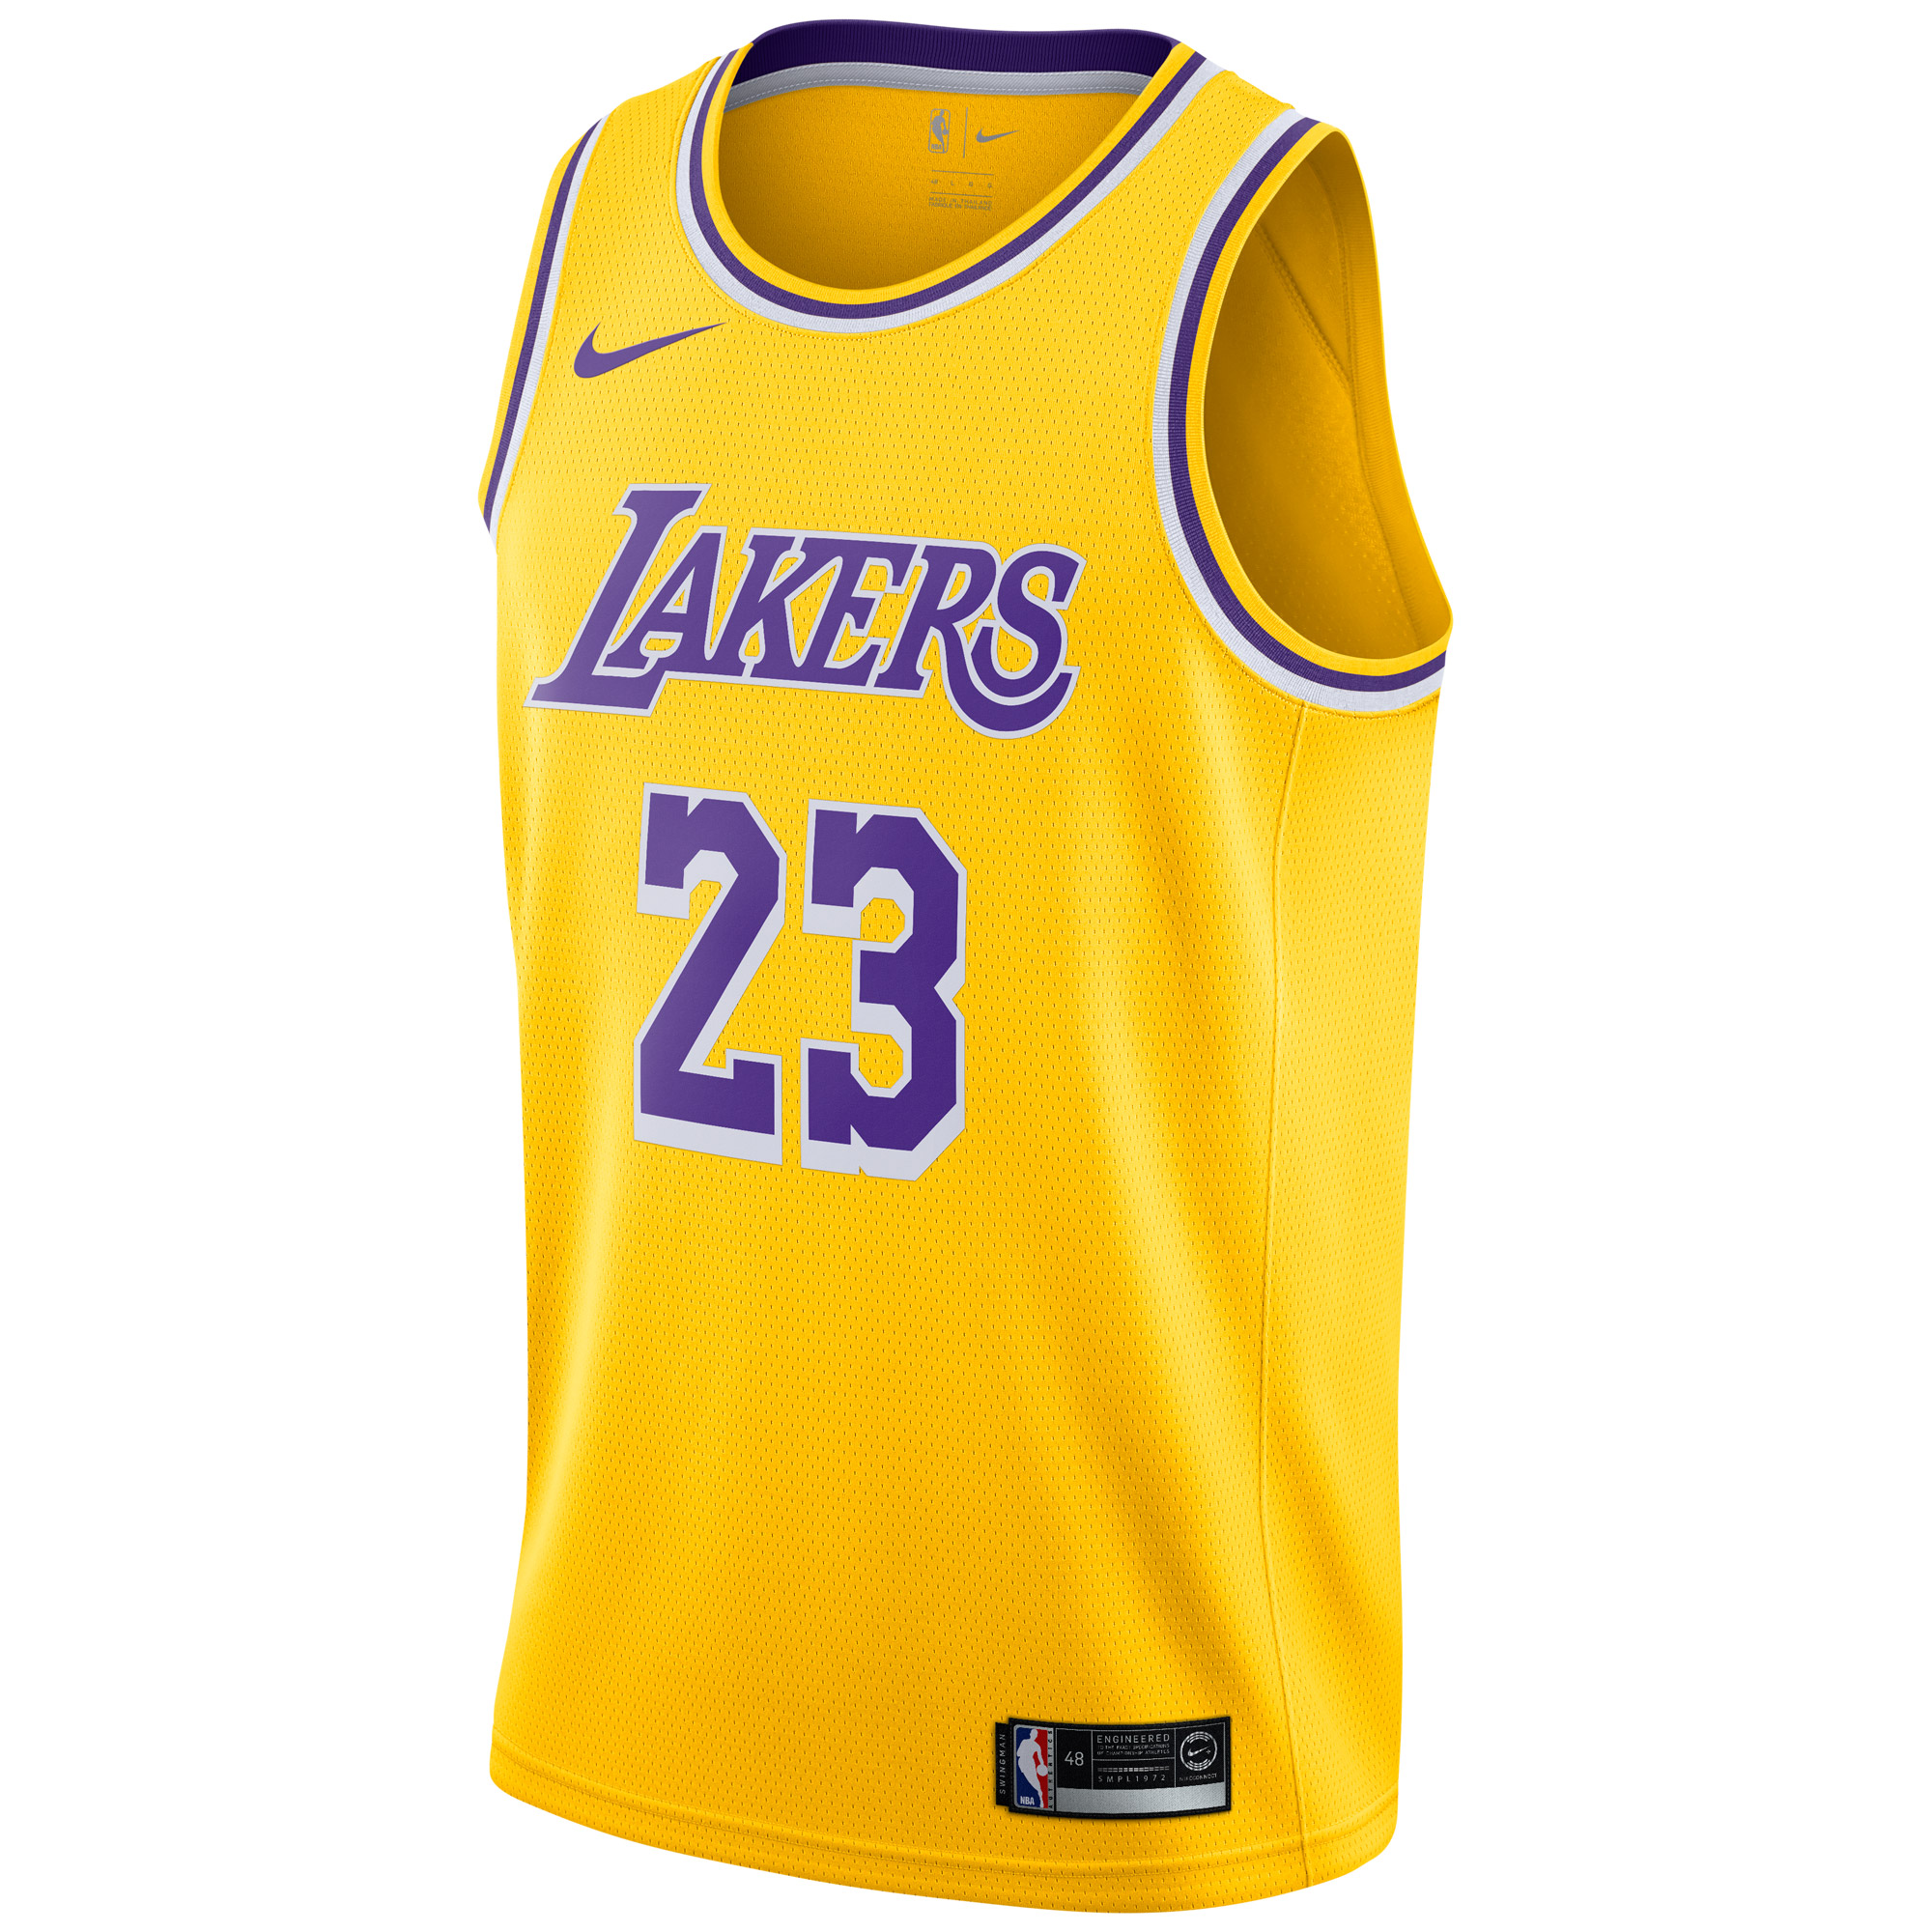 771d51e729ea Los Angeles Lakers Team Shop - Walmart.com